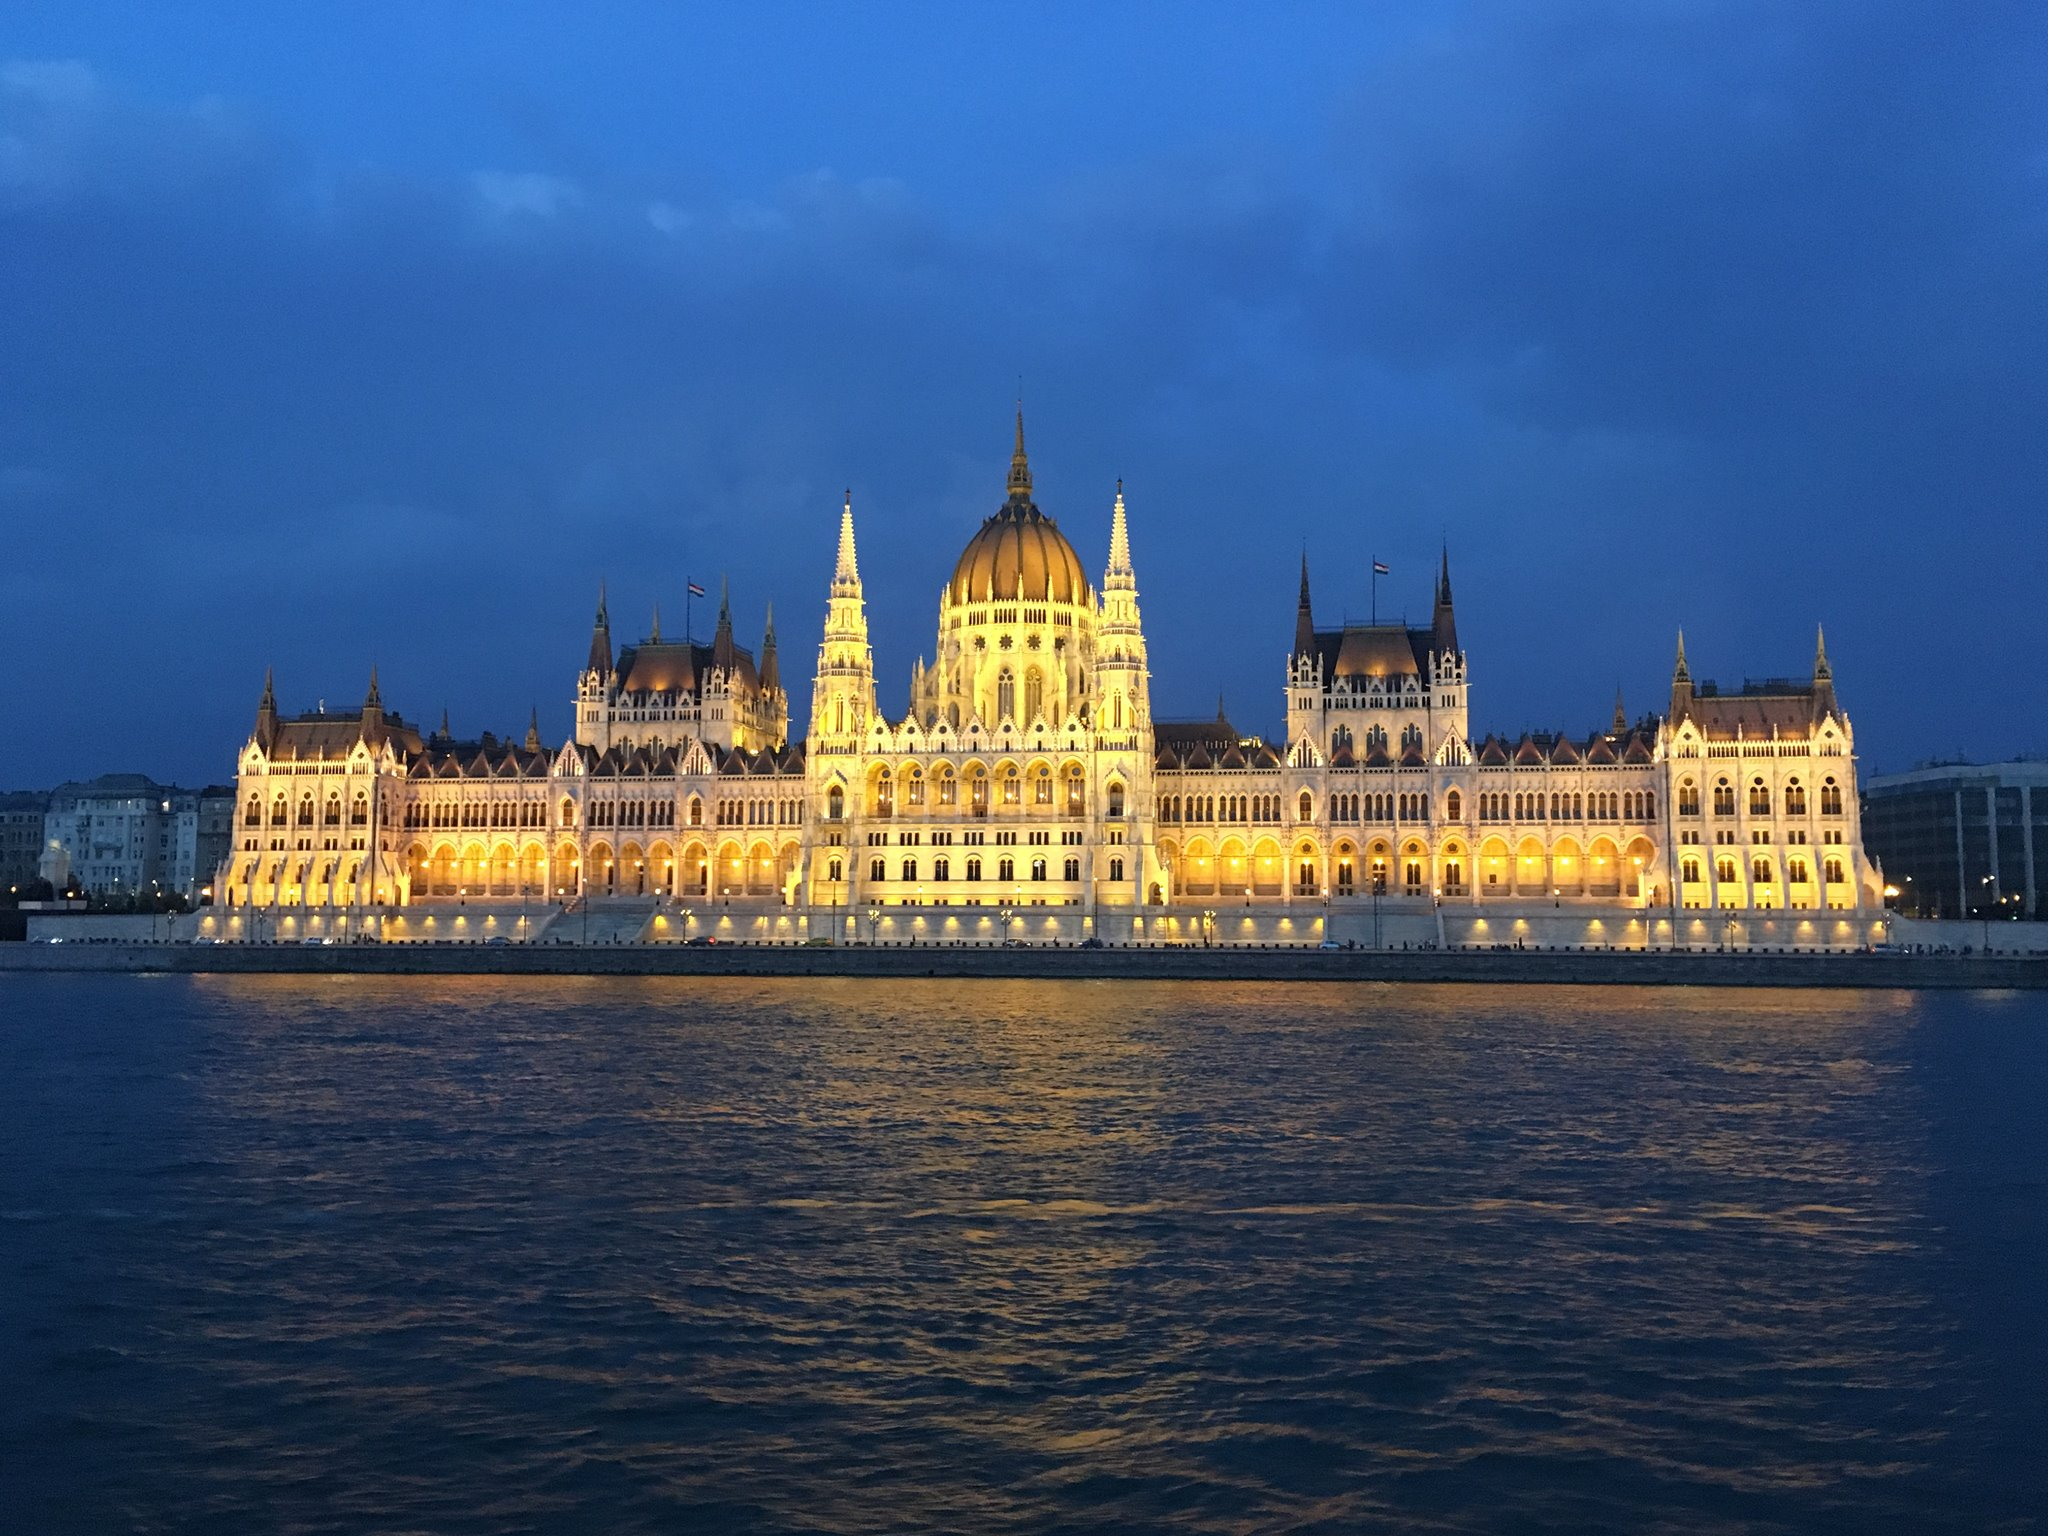 Parliament from the Danube River